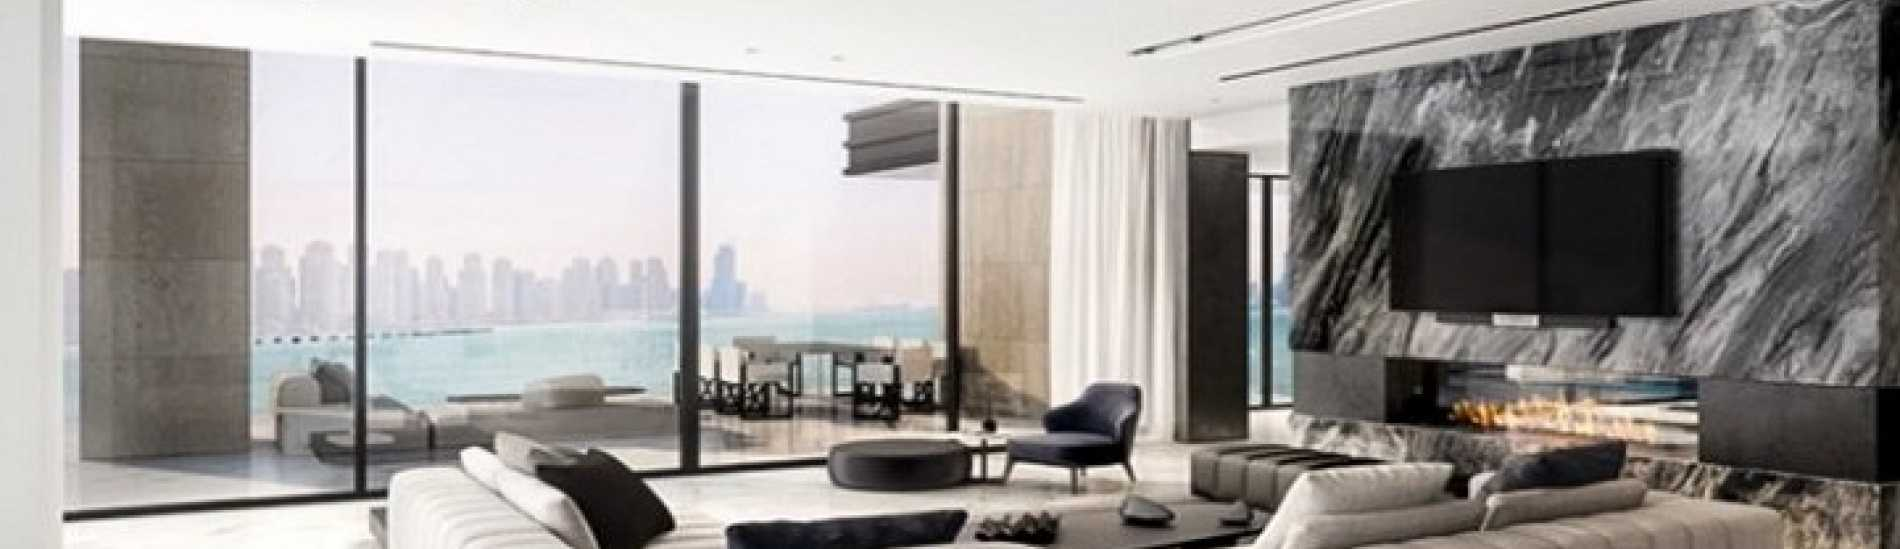 Introducing Palme Couture, an exclusive new residential project